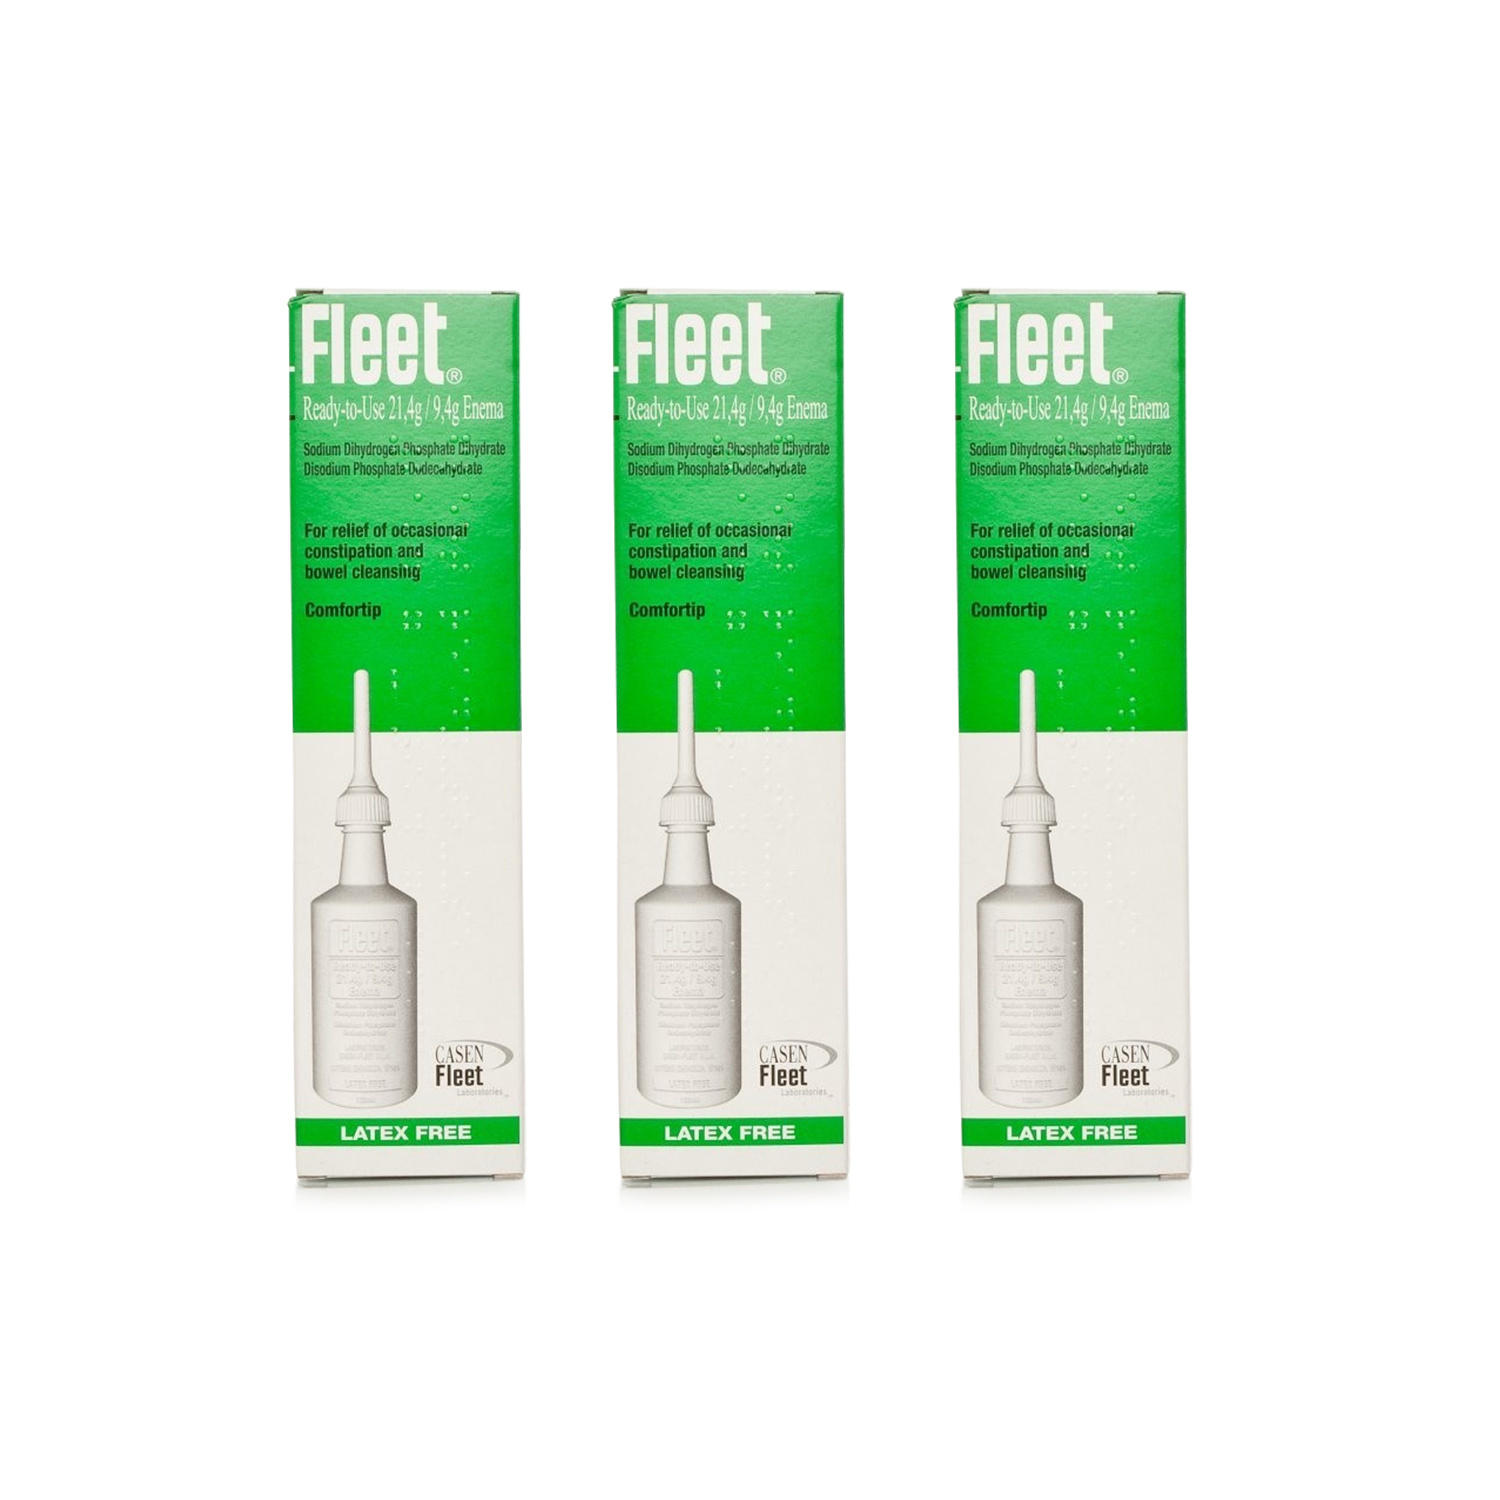 Fleet Ready To Use Enema Multipack